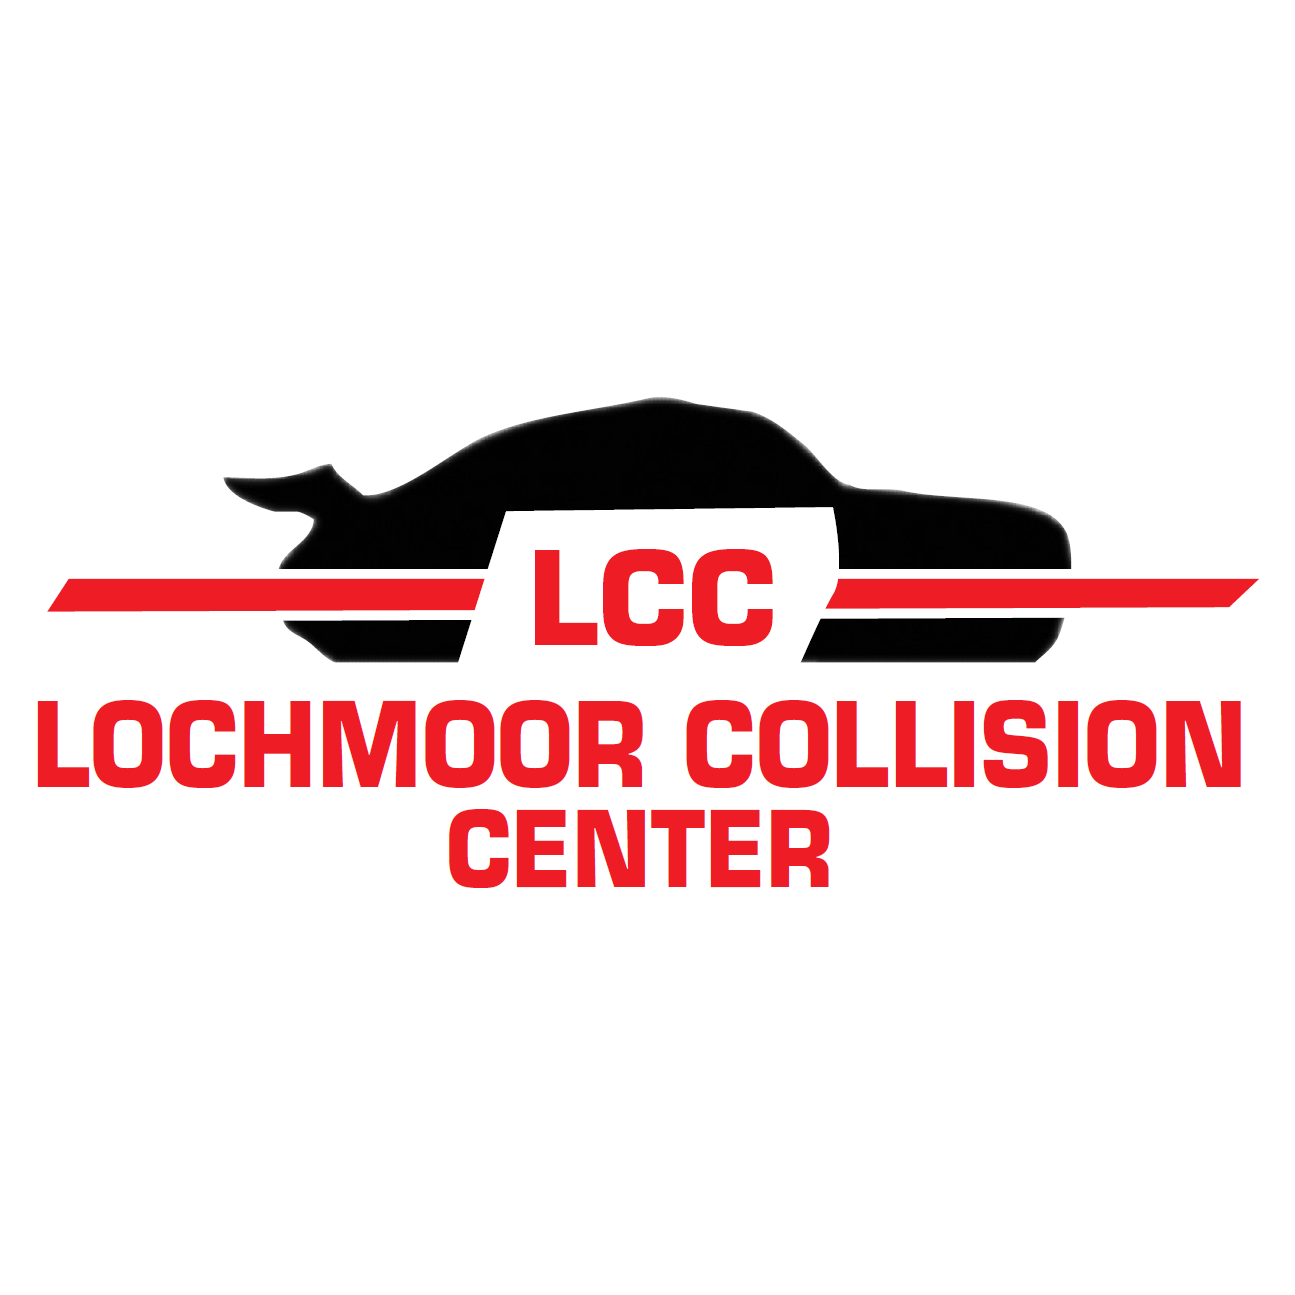 Lochmoor Collision Center image 12